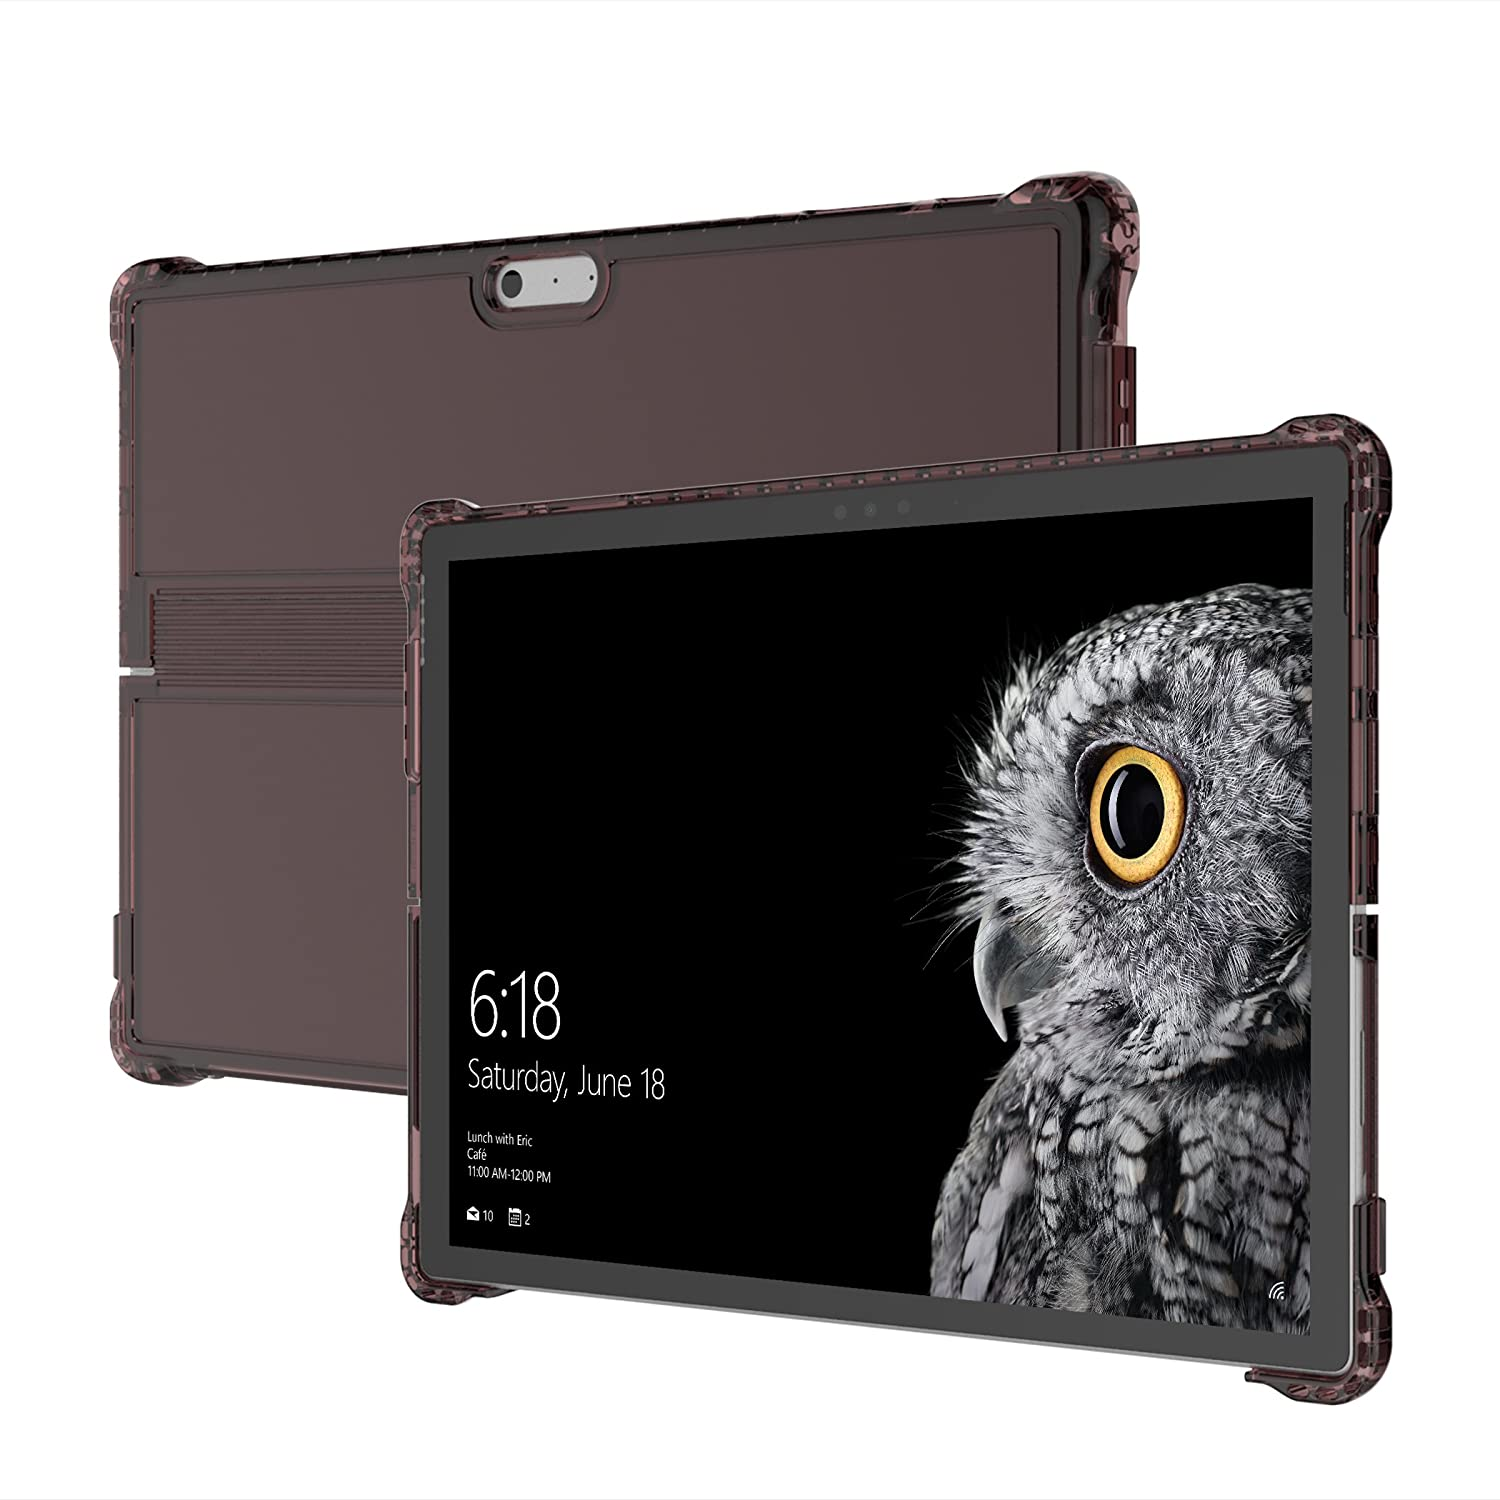 Incipio Octane Pure - Back cover for tablet - thermoplastic polyurethane, Flex2O polymer - transparent, burgundy - for Microsoft Surface Pro (Mid 2017)   B072MHJPW5